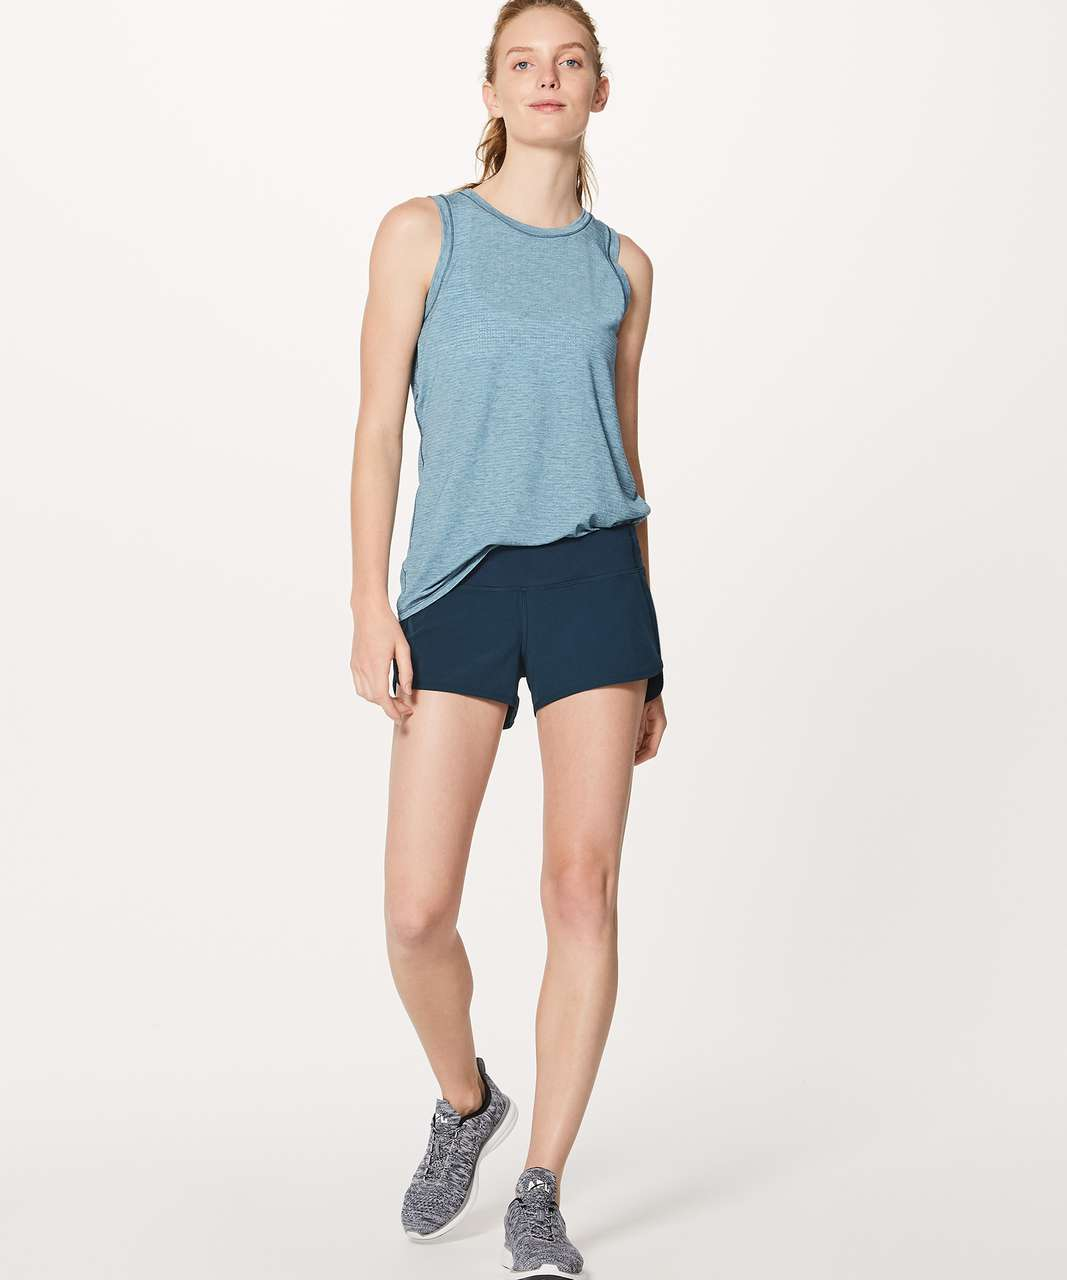 "Lululemon Speed Short (4-way Stretch 2.5"") - Jaded"